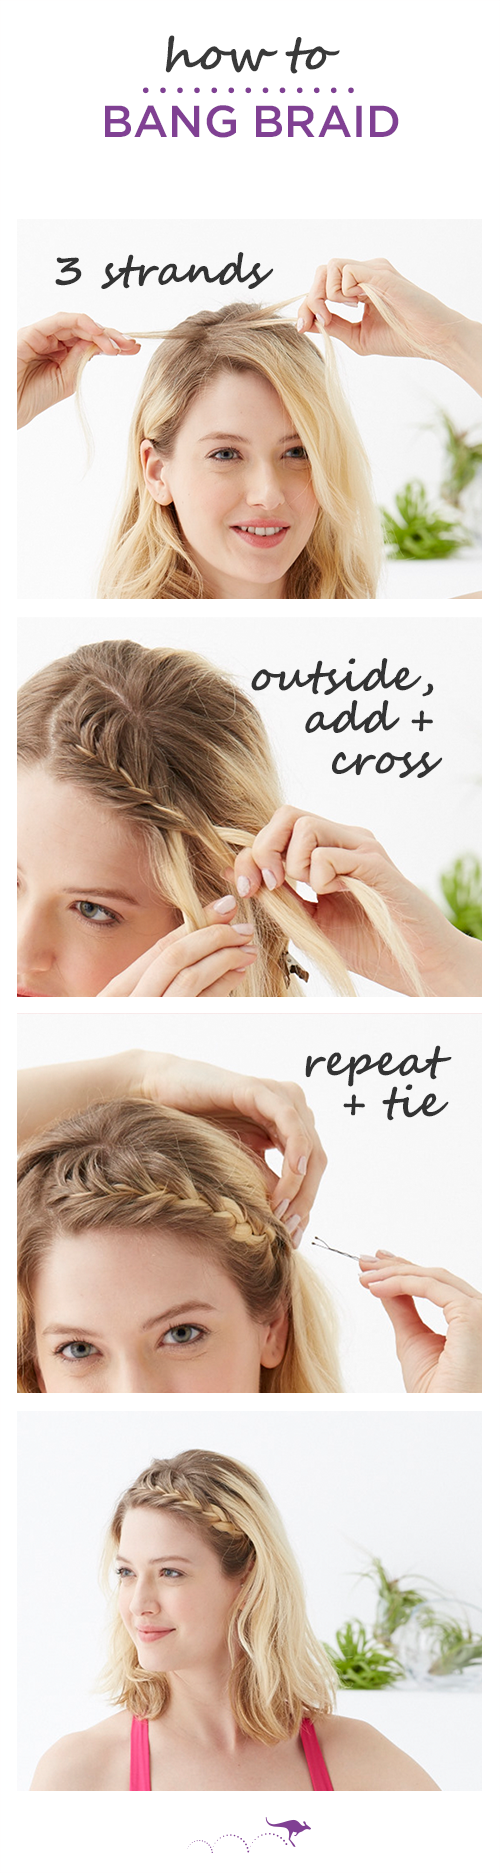 how to: bang braid | ideal for short hair or bangs, keep hair out of